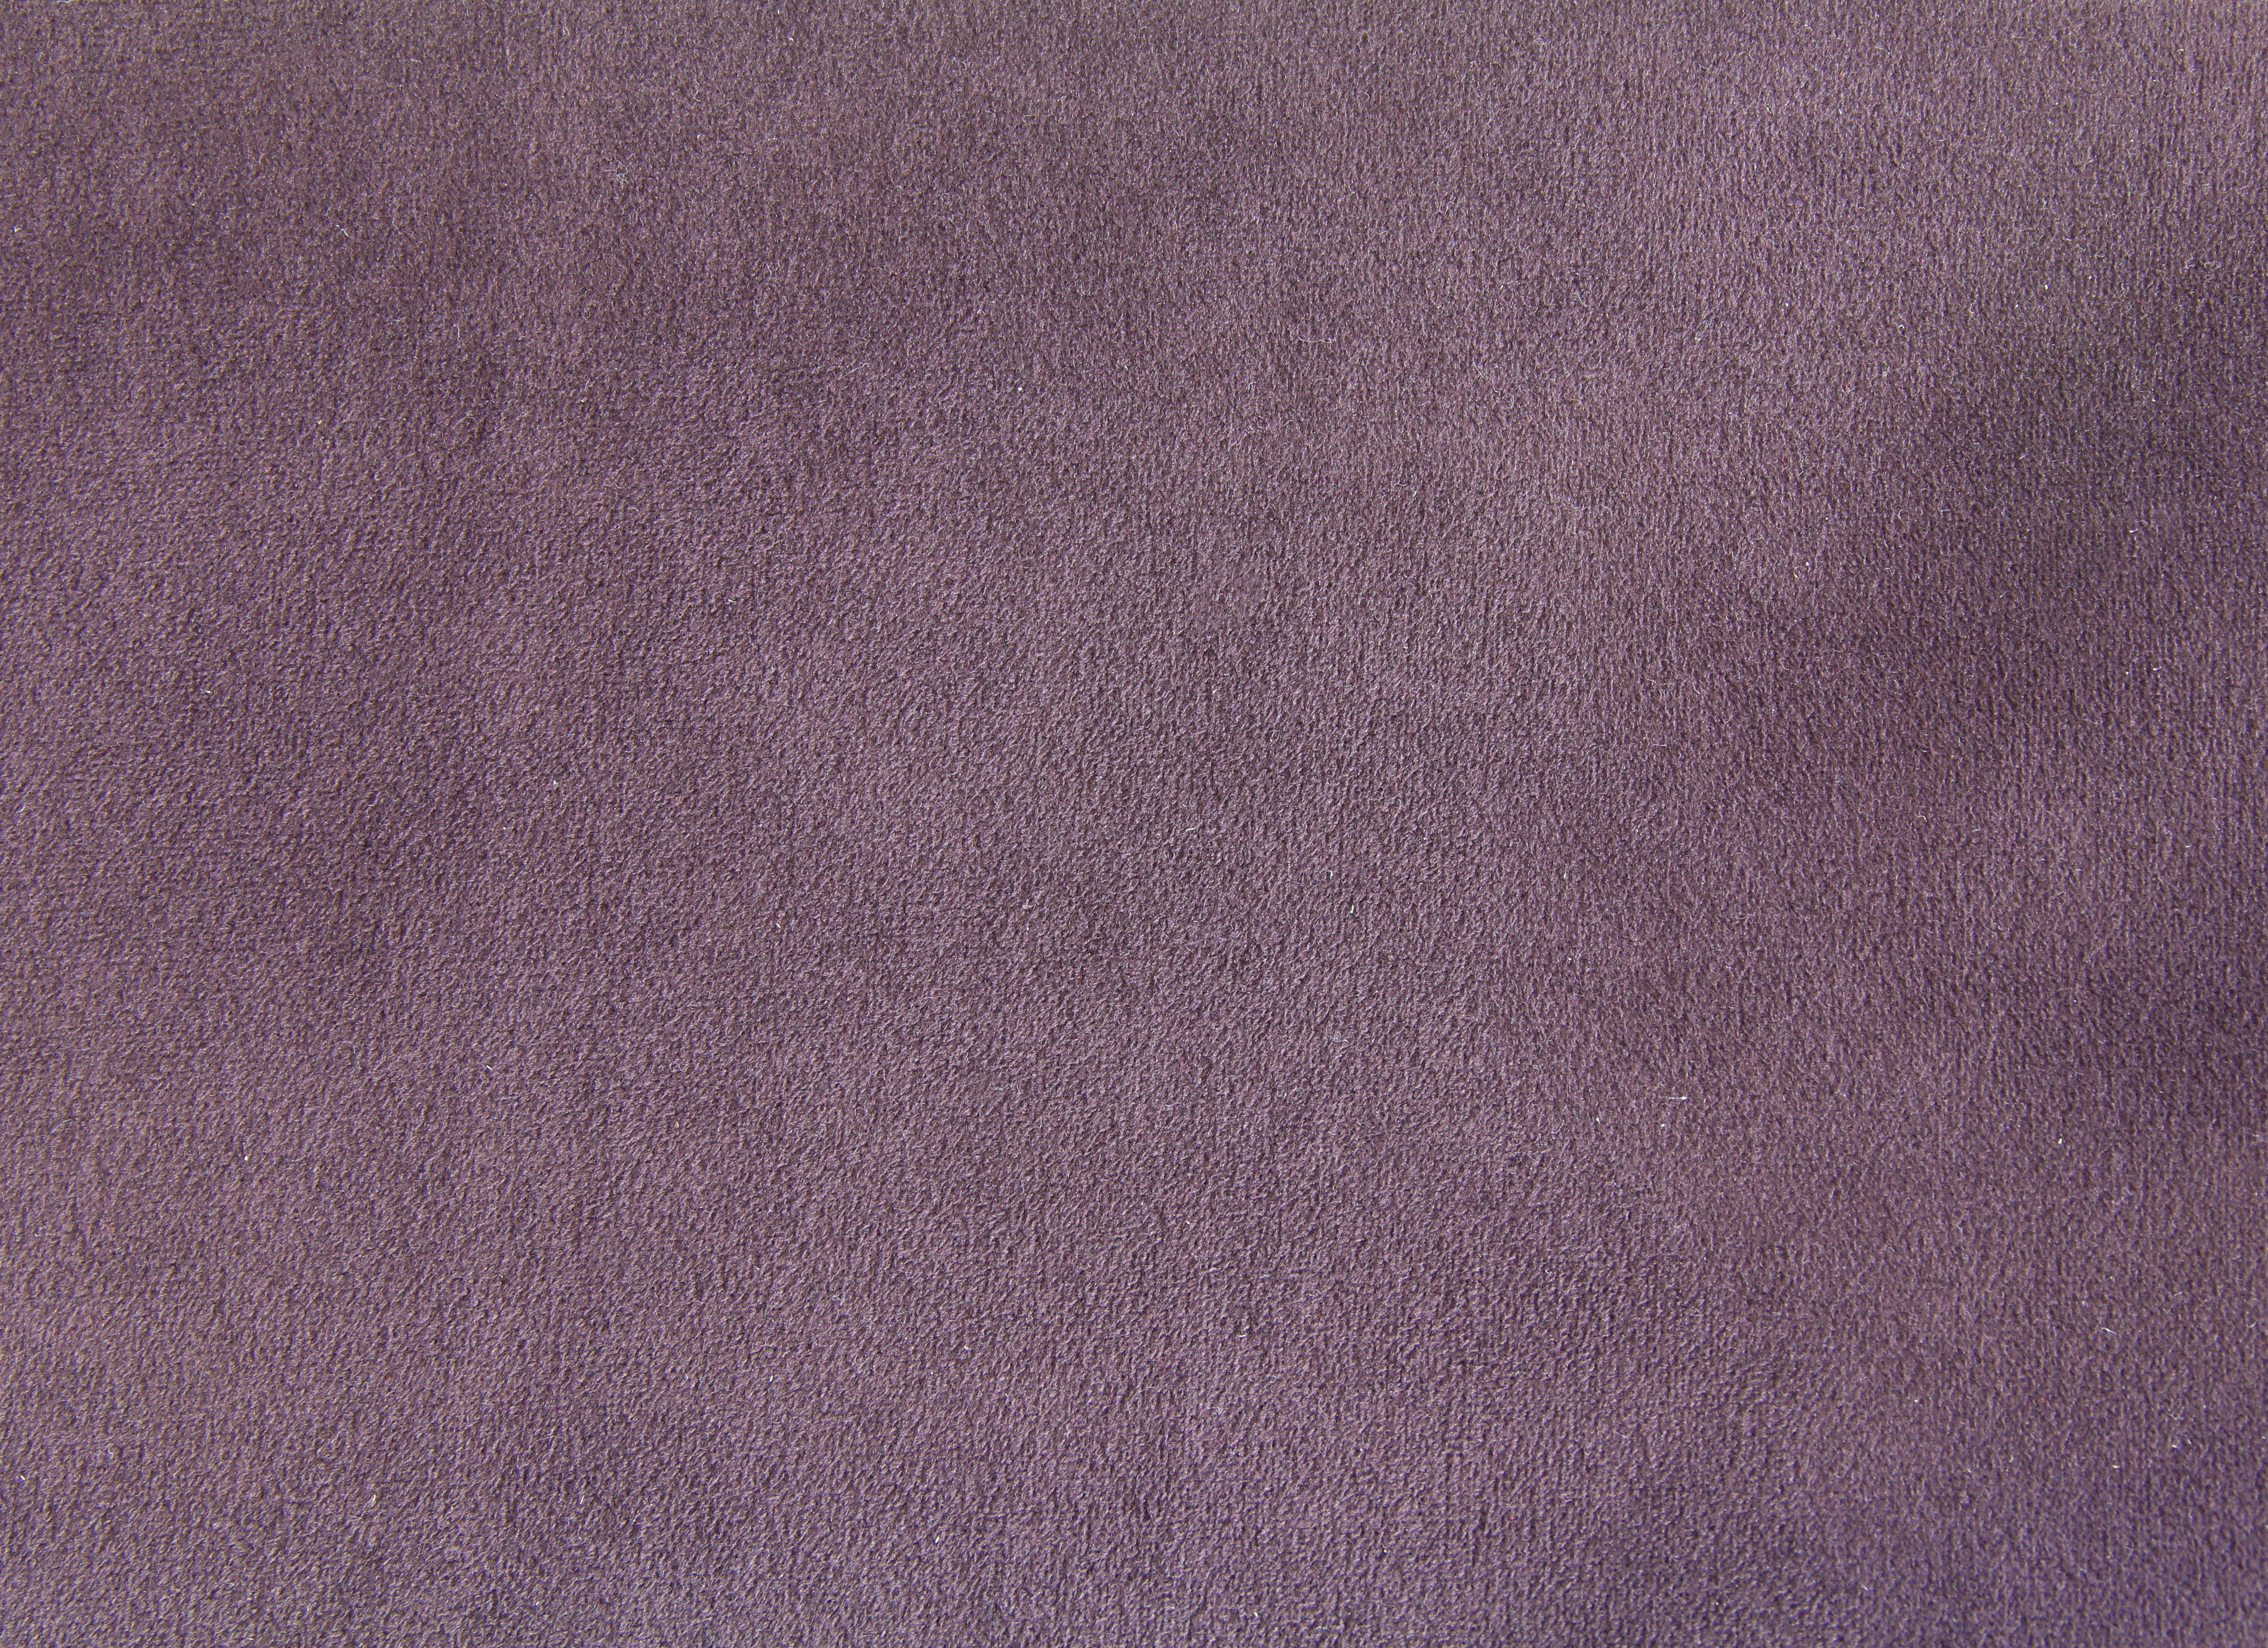 purple suede texture fabric couch fuzzy cloth photo wallpaper ...